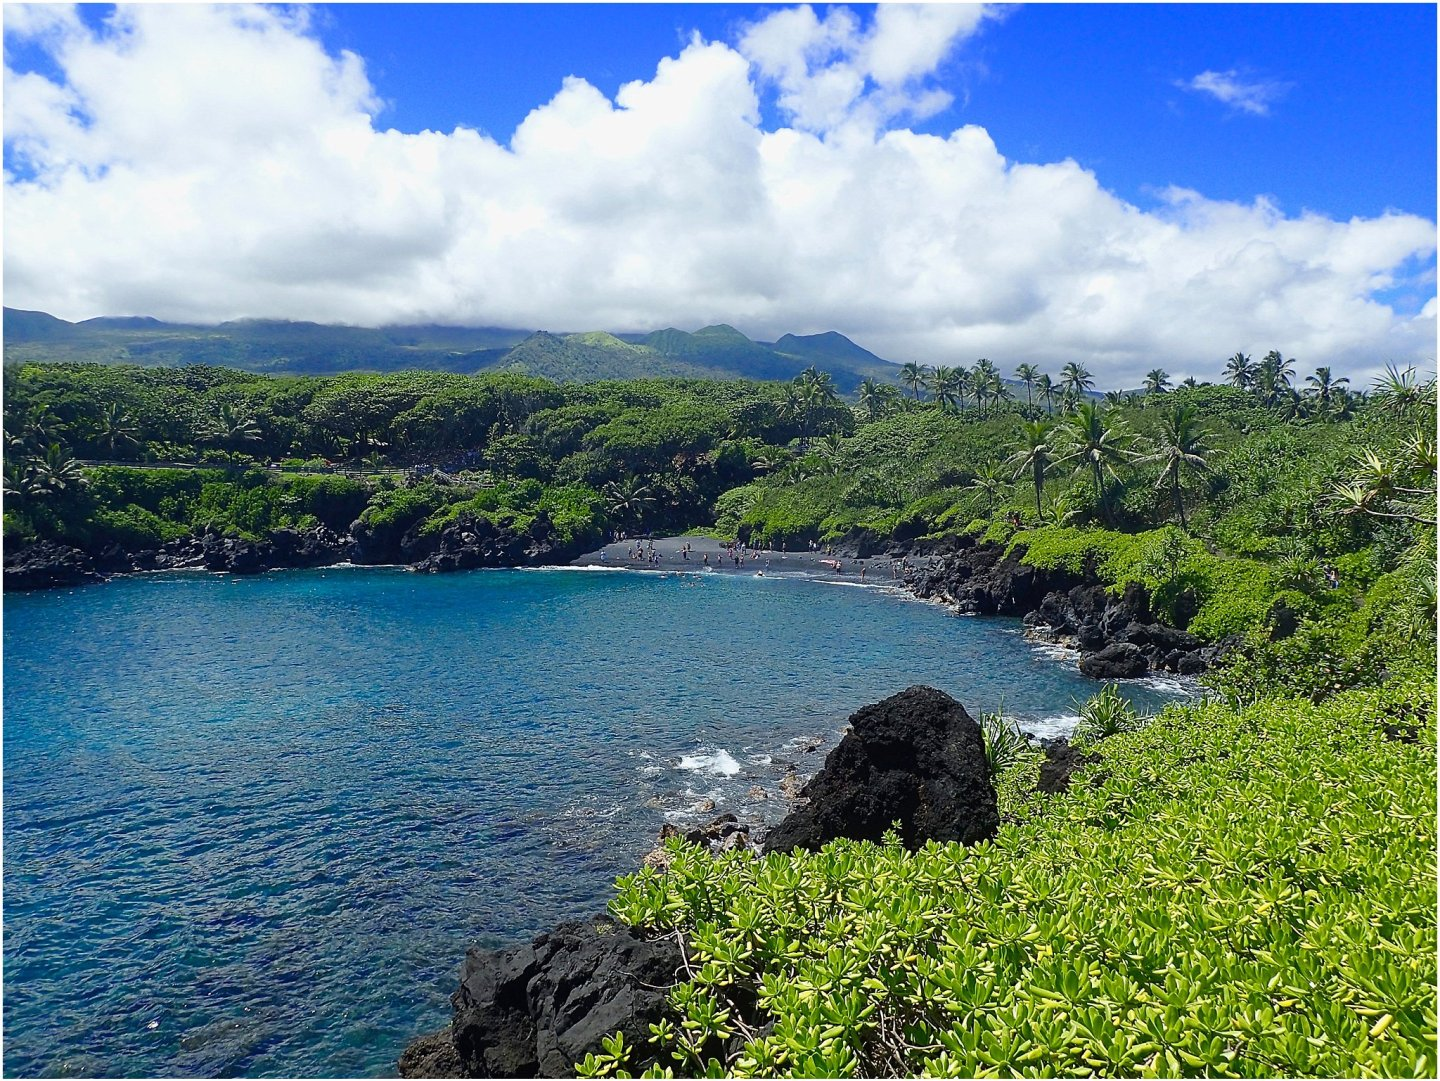 Wainapanapa Park- The road to Hana maui - Road or destination? Guest Post by Lara Olivia Miss Portmanteau? Club Elsewhere - The World's Travel Diary edited by Rosie Bell